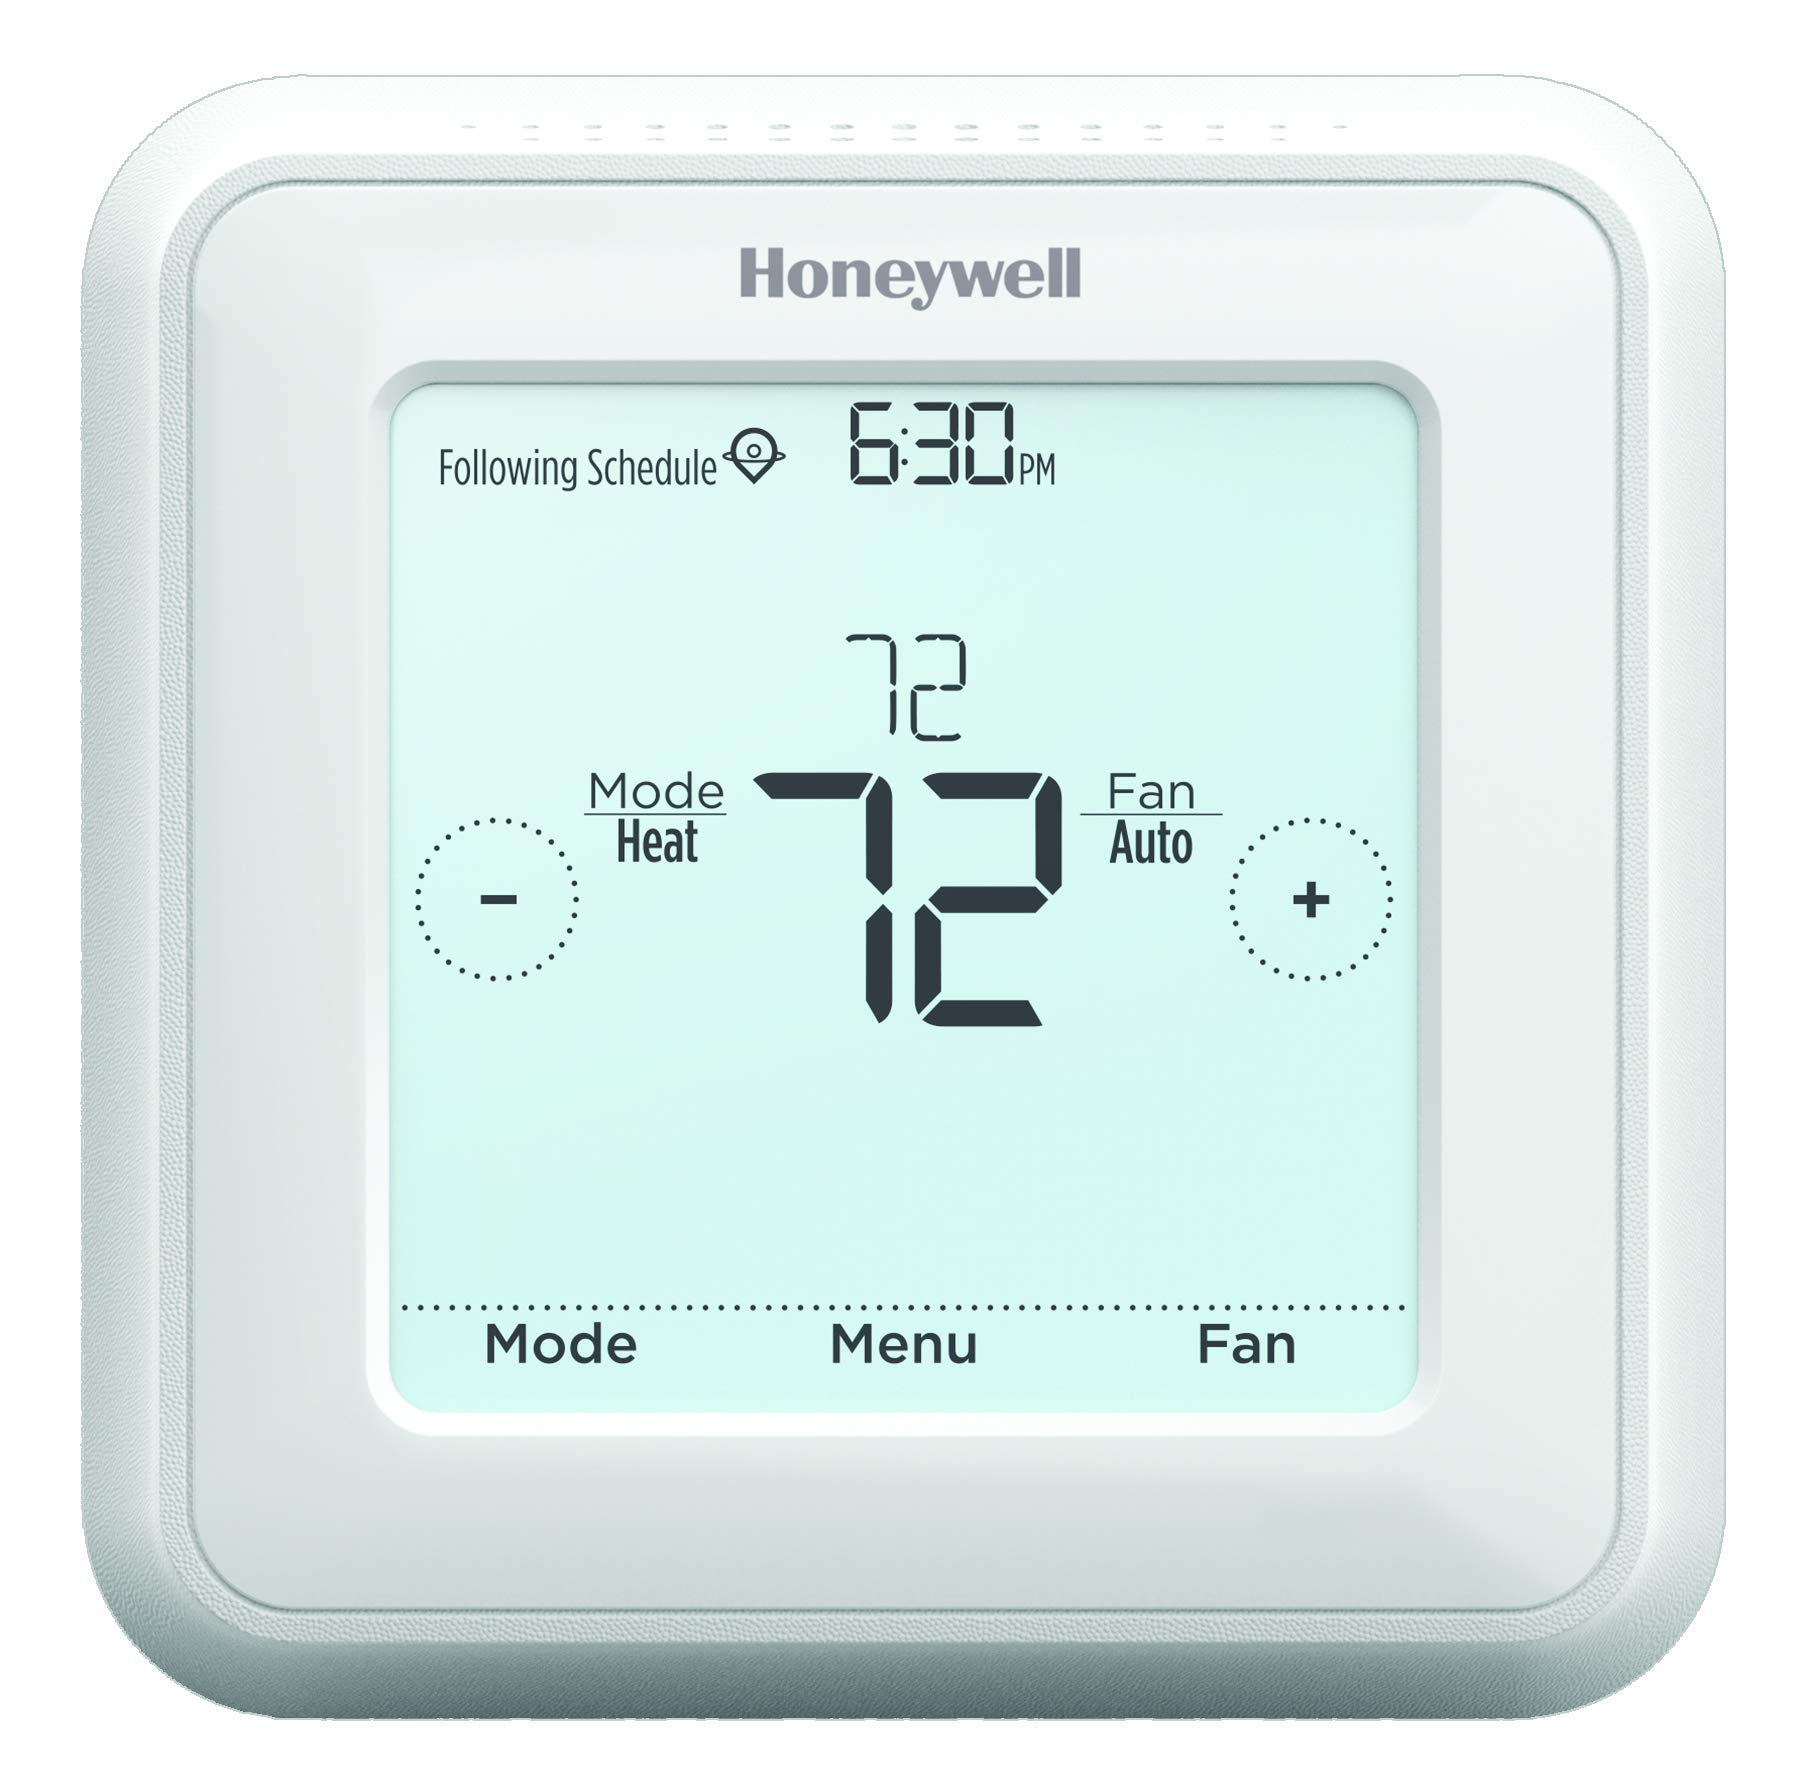 Honeywell RTH8560D1002/E T5 Touchscreen Thermostat White